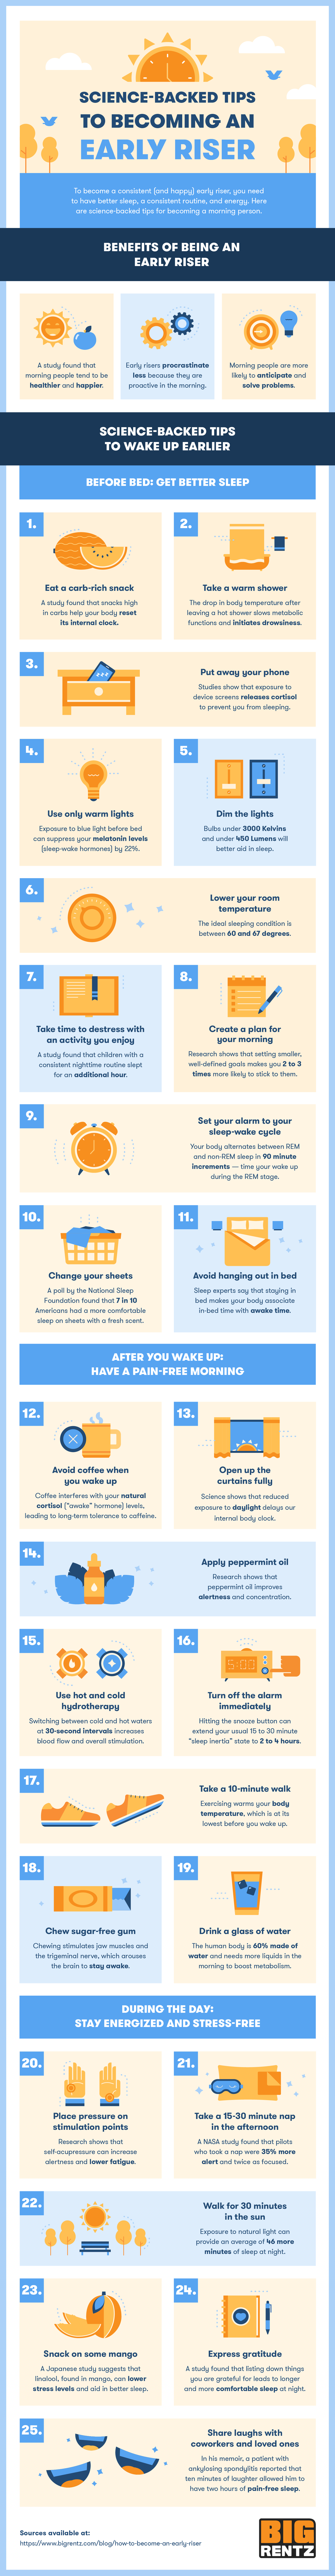 Infographic describing 25 science-backed tips for becoming an early riser.